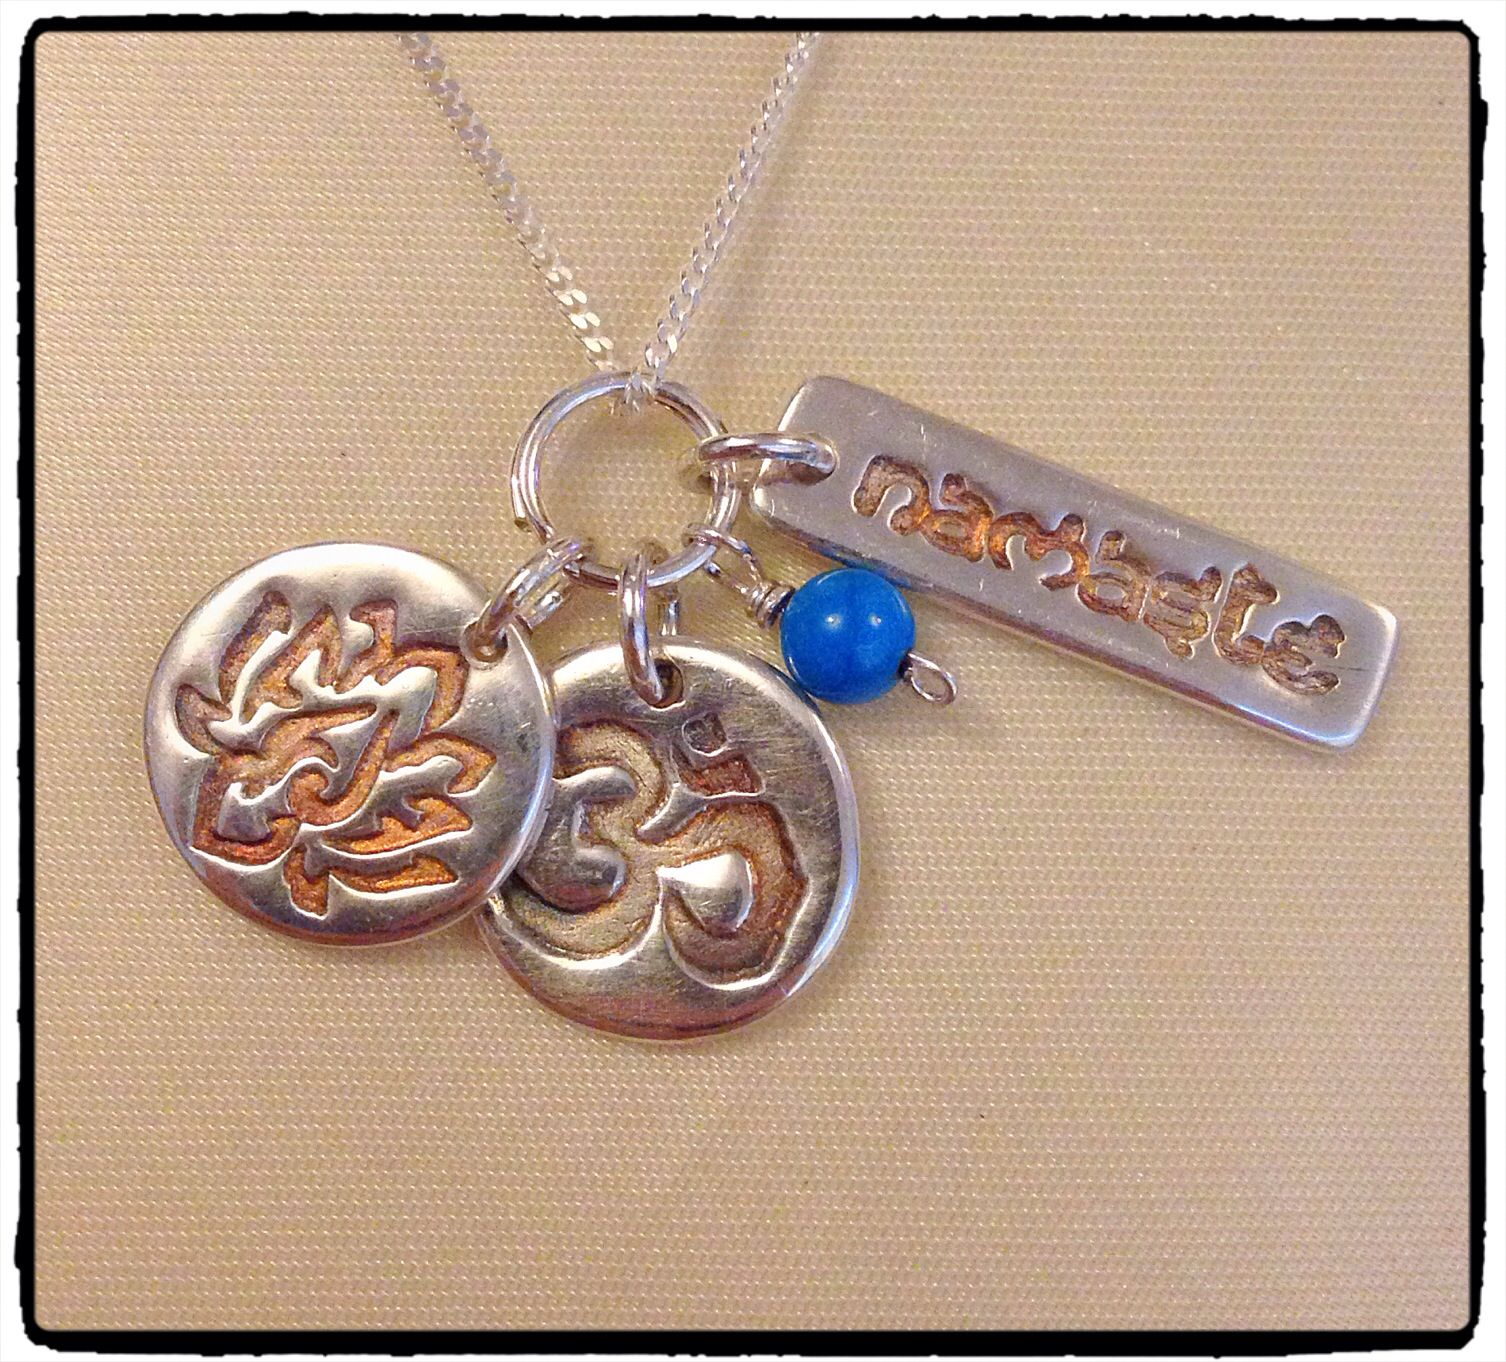 Fine Silver Clay Yoga Jewellery Namaste Is The Sanskrit Greeting